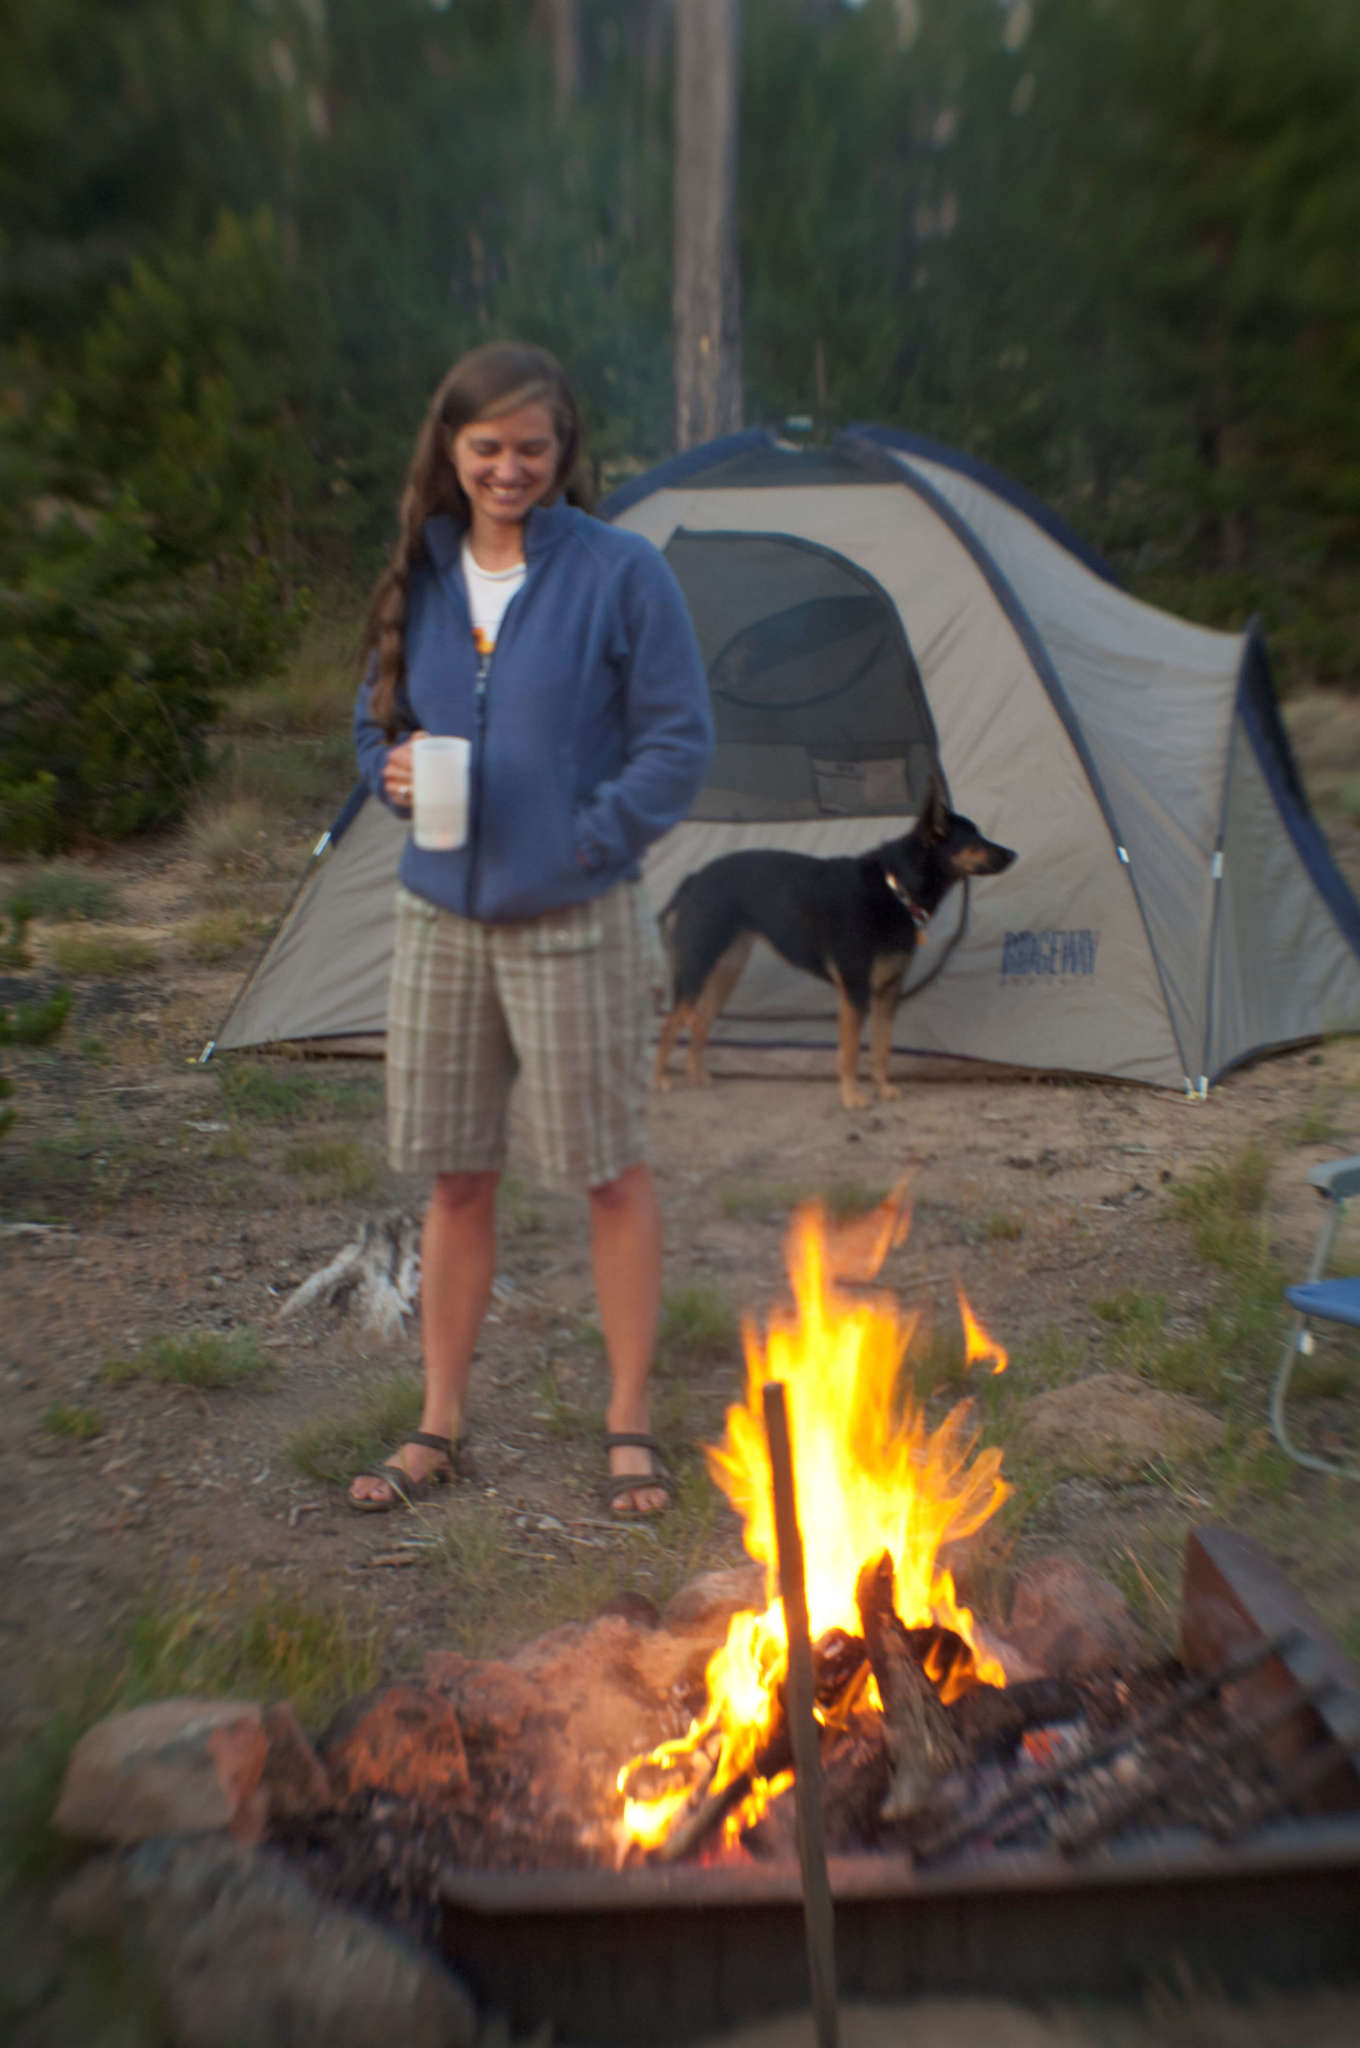 Visit Bend staffers share their top spots for camping in Central Oregon